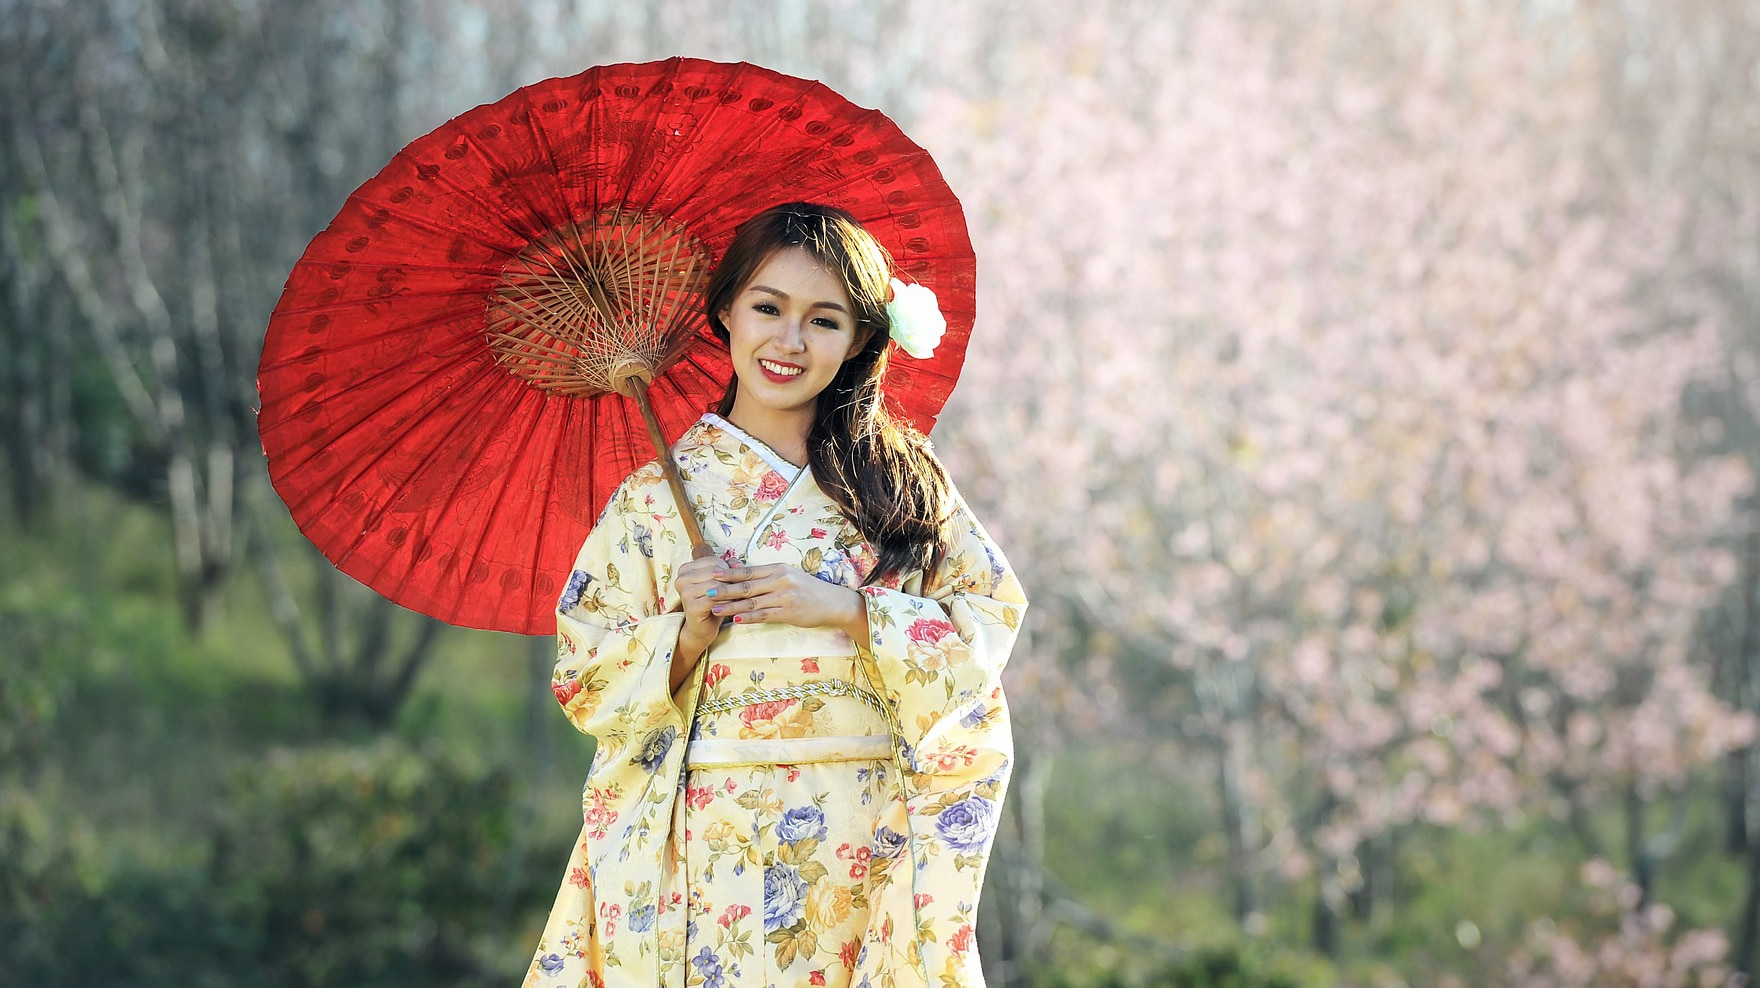 Traditionelles Haus In Japan Kaufen Trend Asian Beauty Kosmetikartikel Aus Korea Und Japan